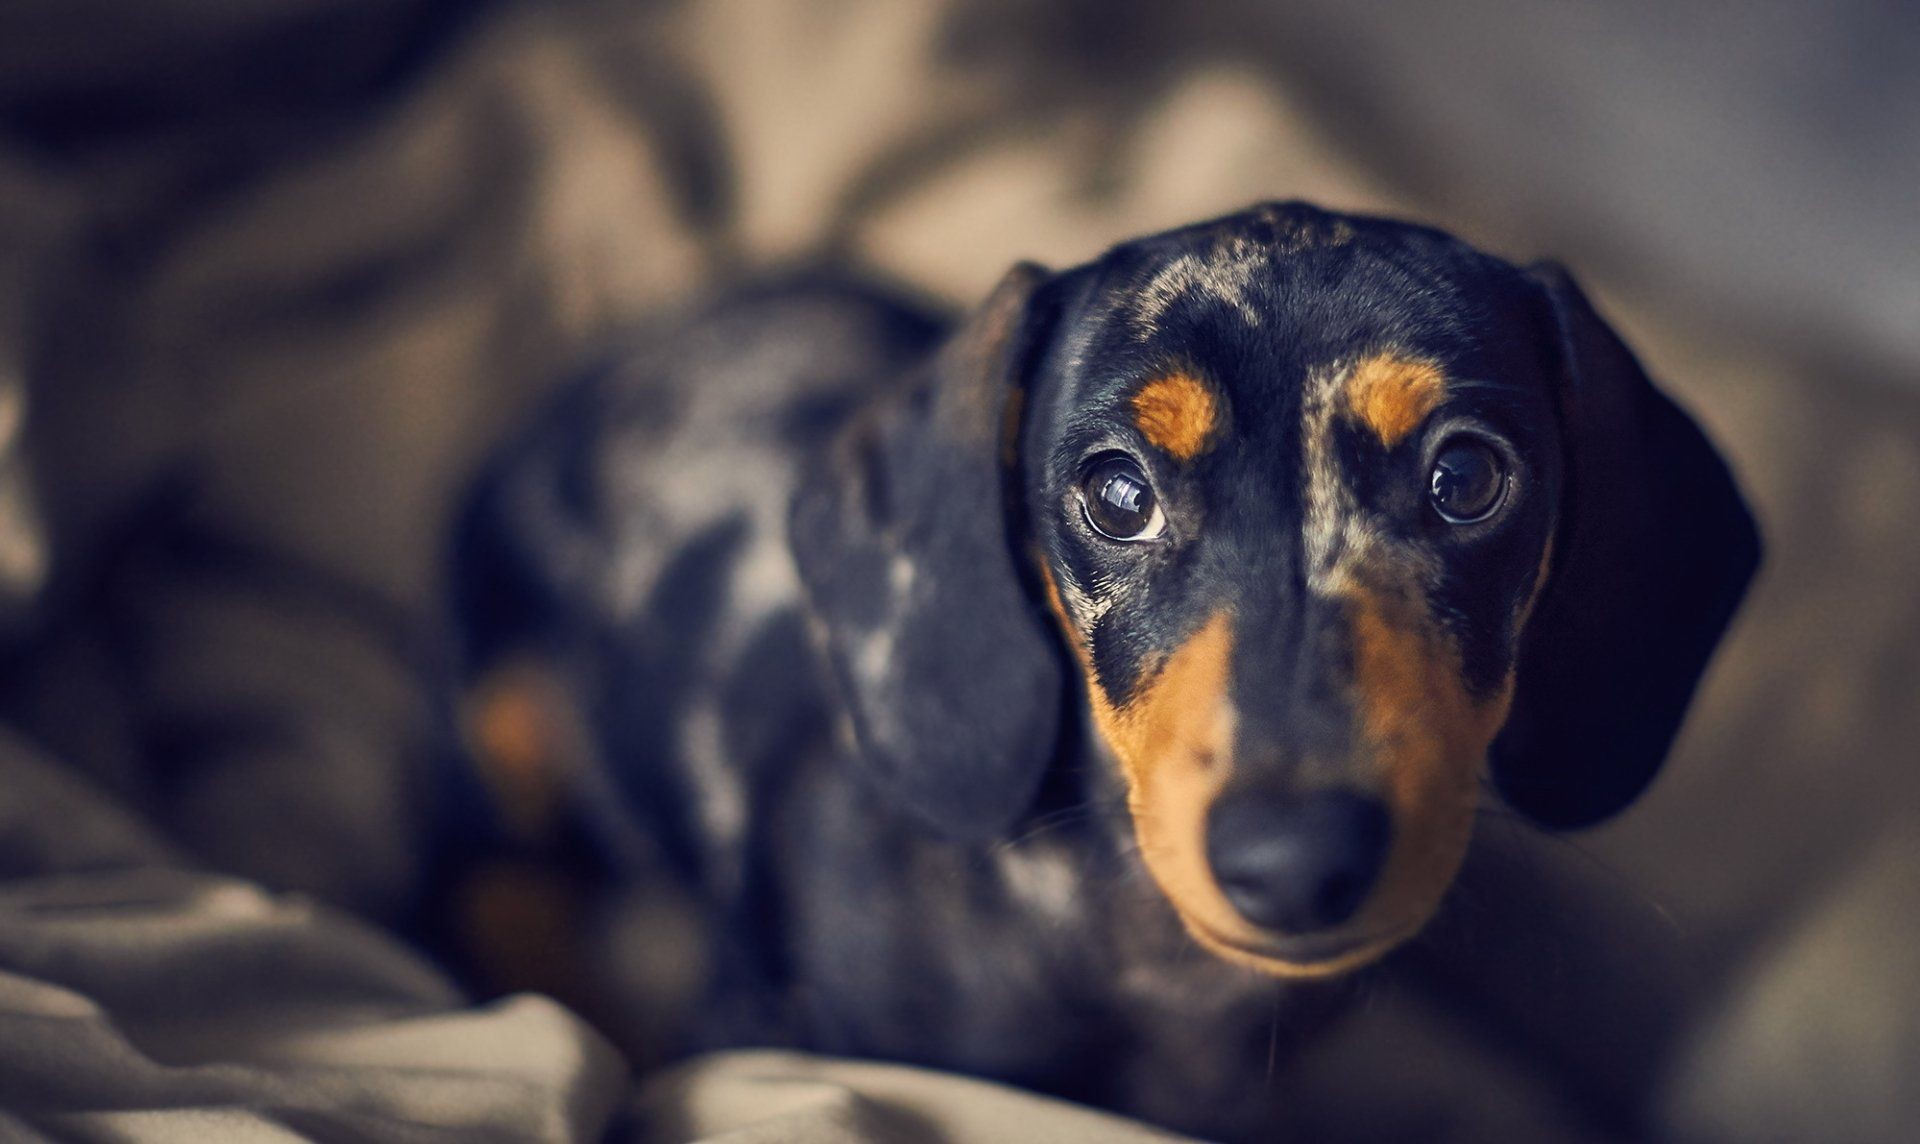 PreviousNext. Previous Image Next Image. dachshund wallpaper 1280×1024 wallpapers  dachshund 1280×1024